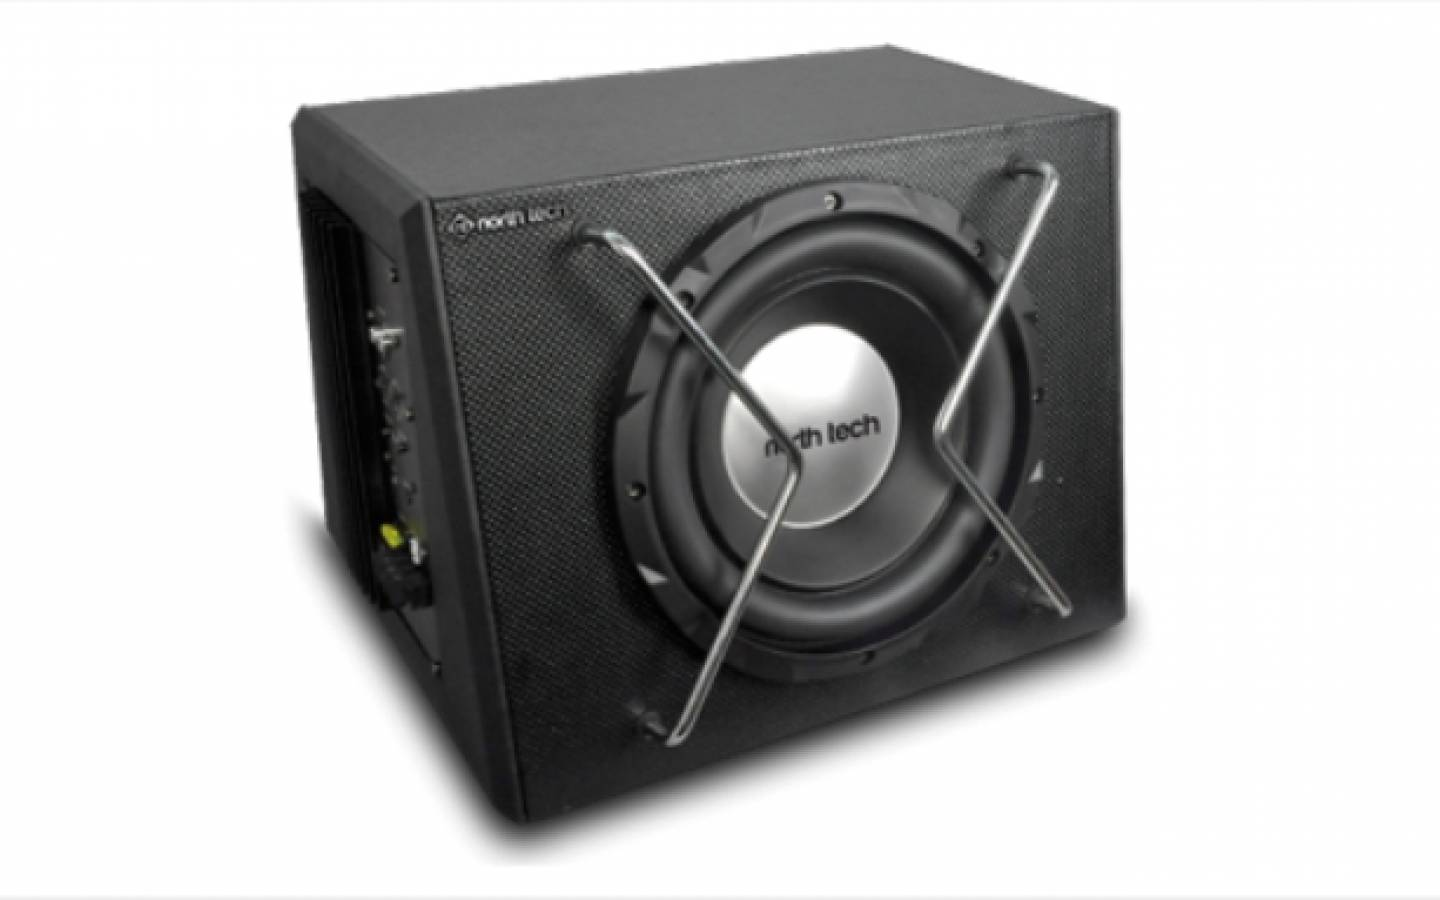 Subwoofer Potenciado Box 12  North Tech